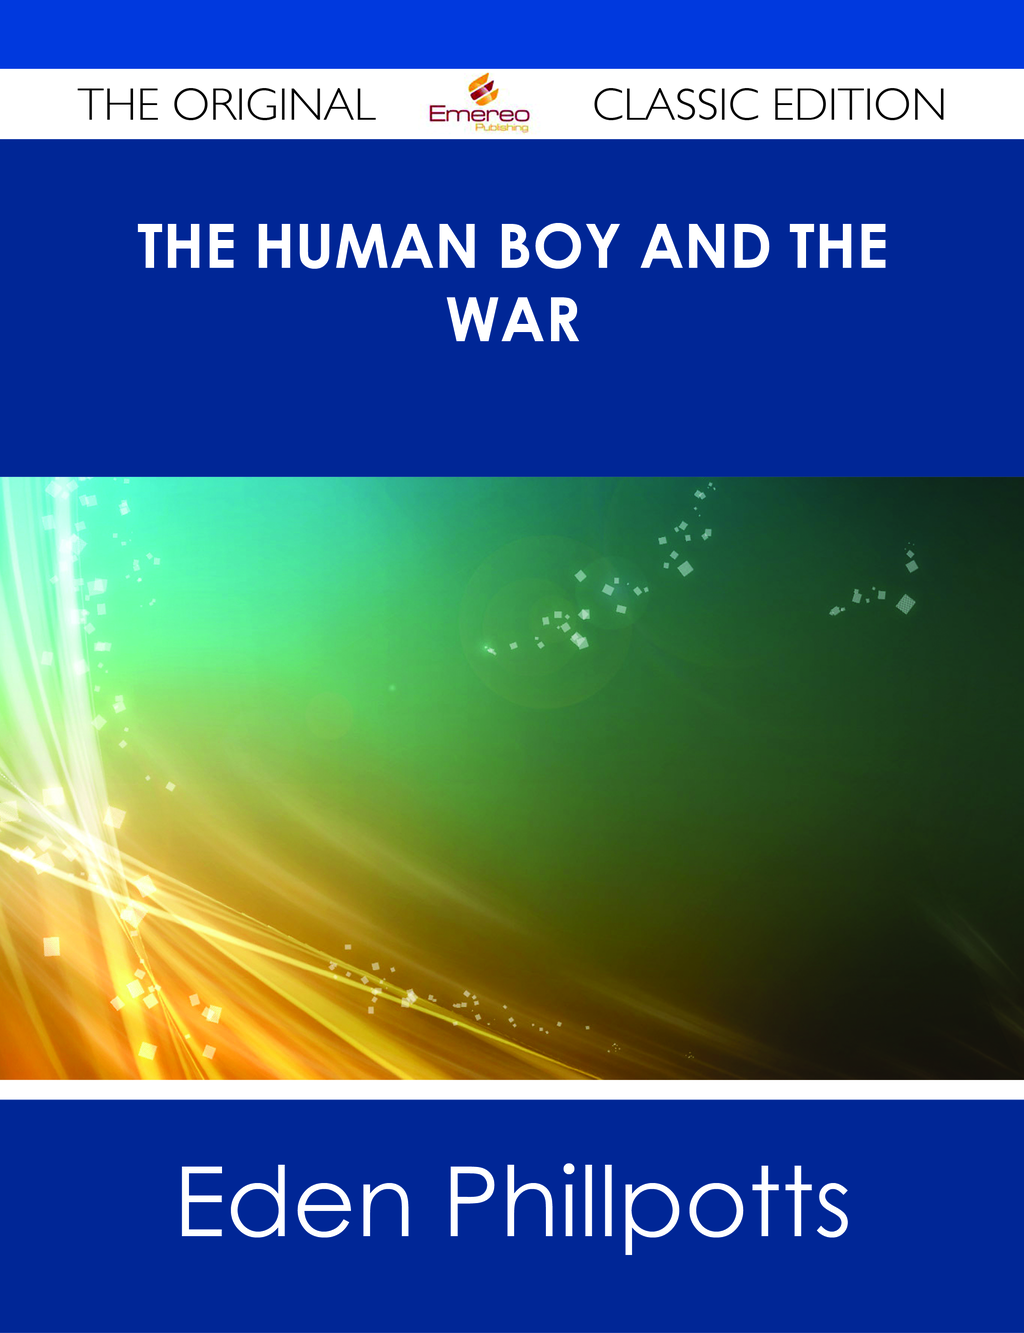 The Human Boy and the War - The Original Classic Edition